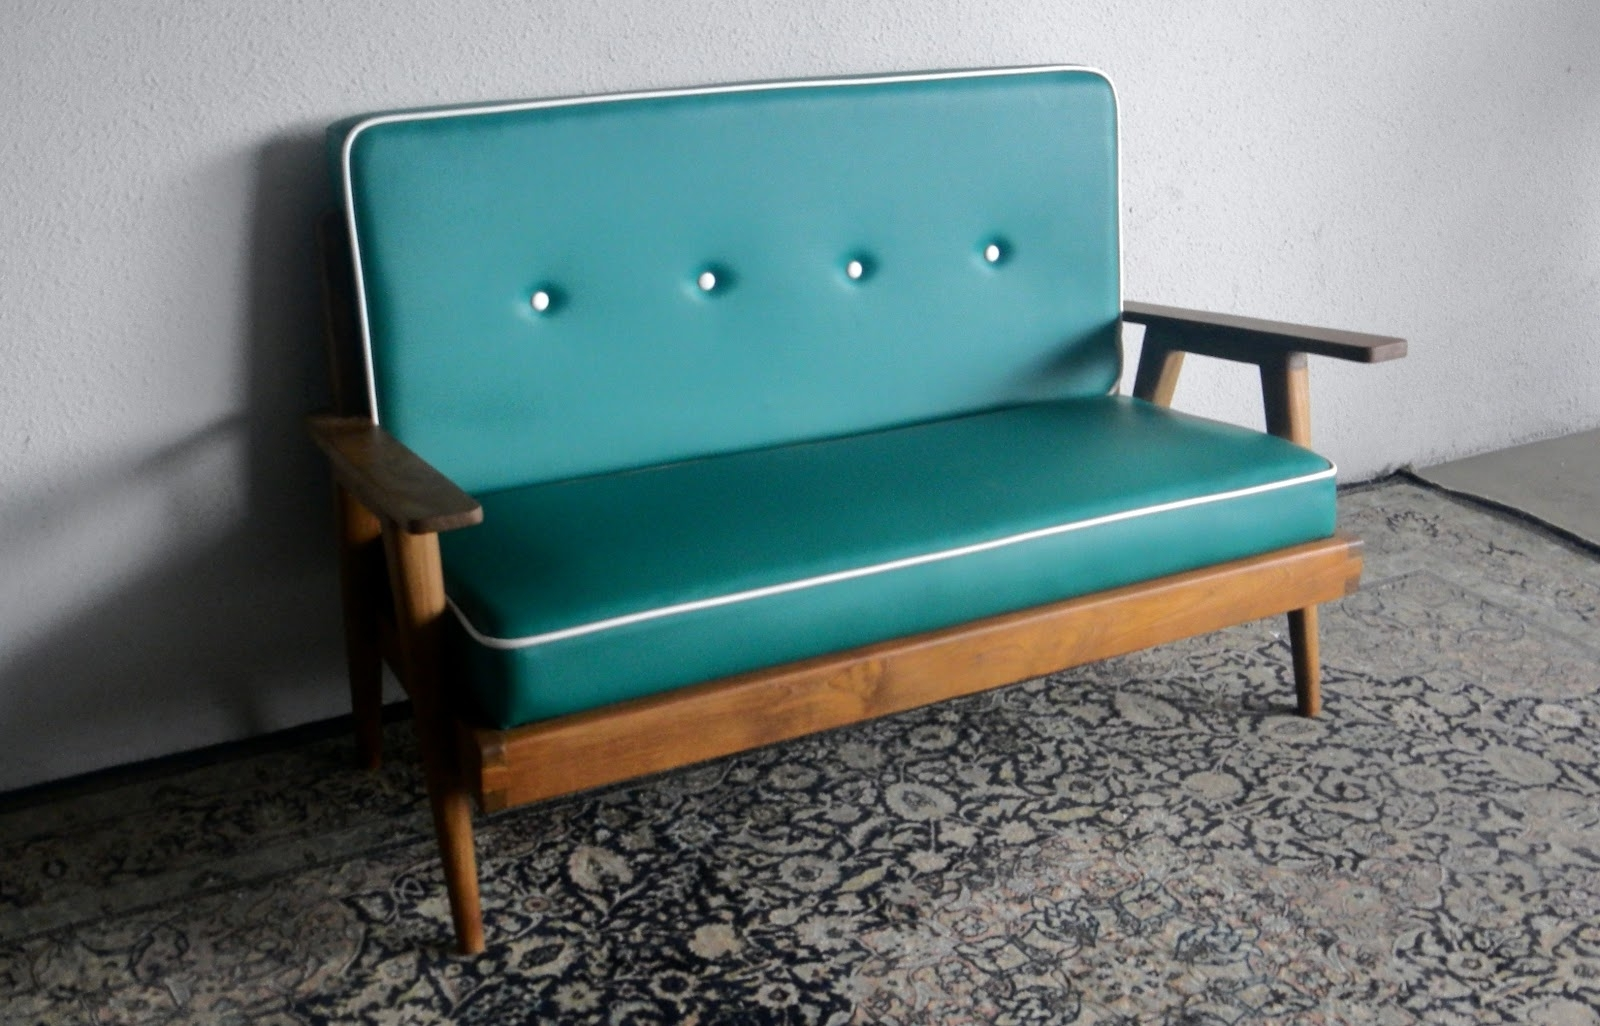 Famous Retro Sofas And Chairs Throughout Retro Sofas And Chairs (View 6 of 20)